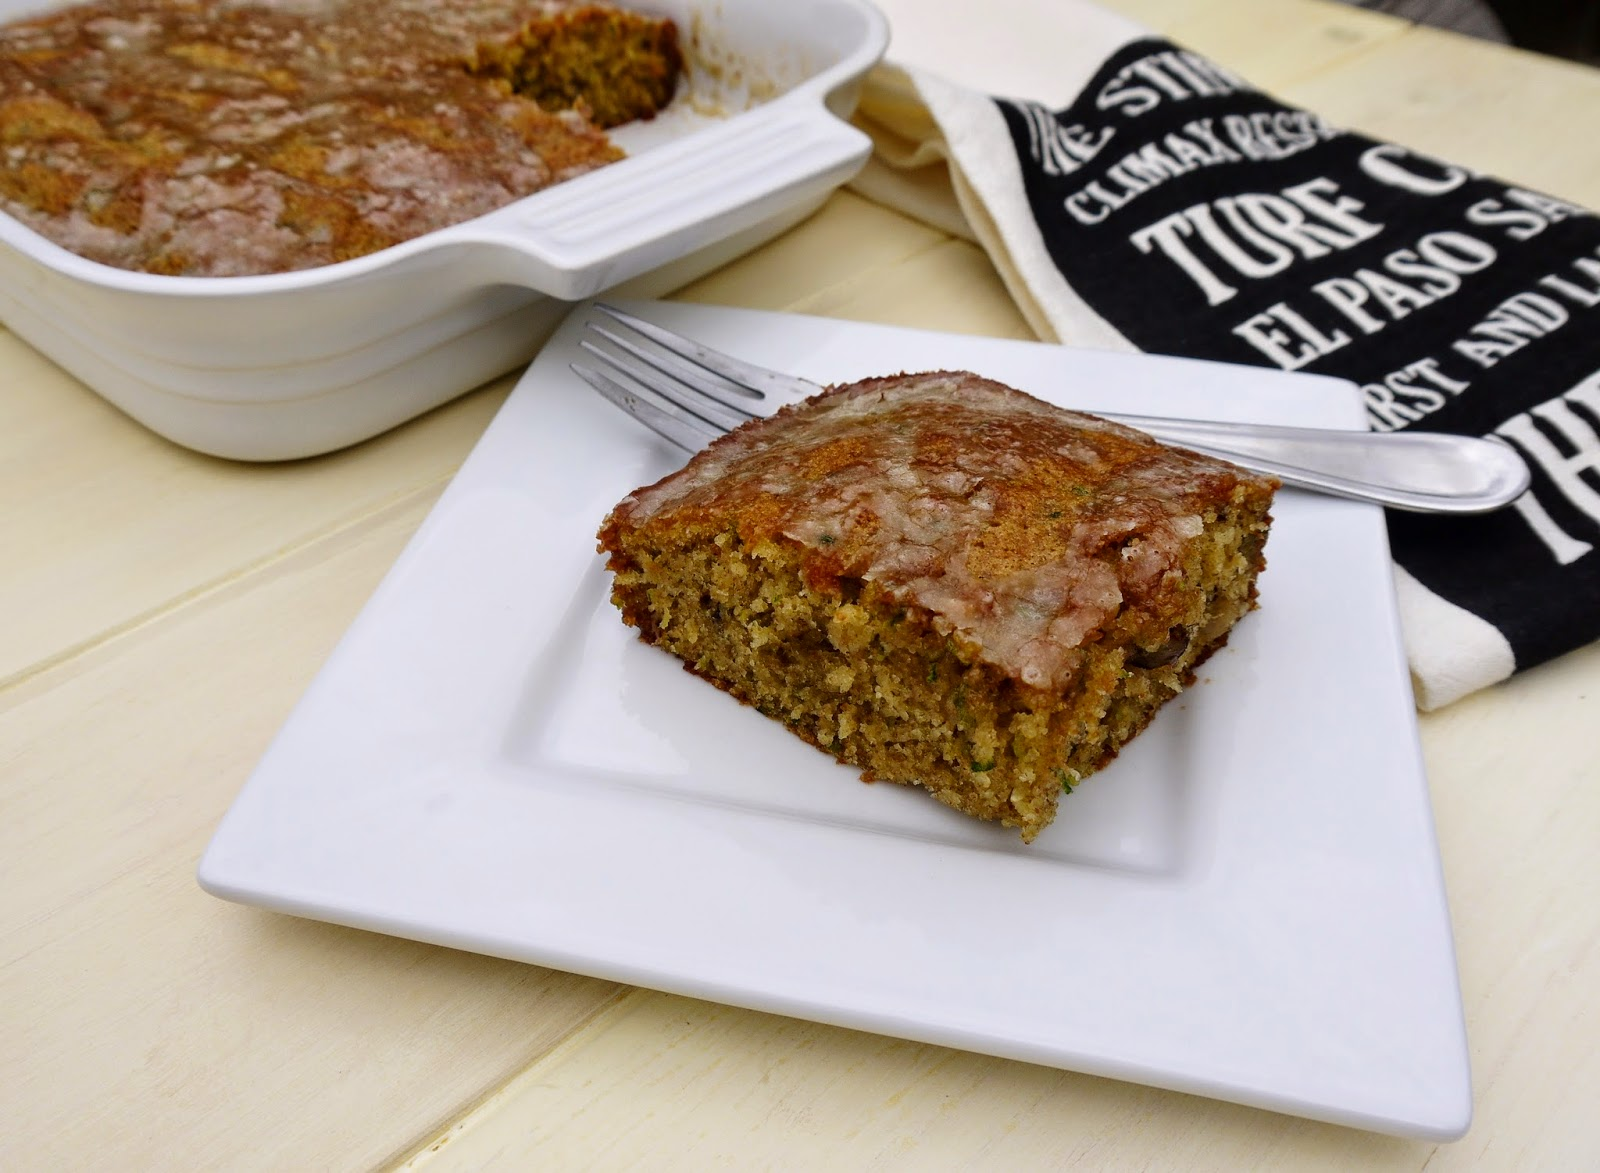 http://www.eat8020.com/2014/09/20-maple-zucchini-cake.html